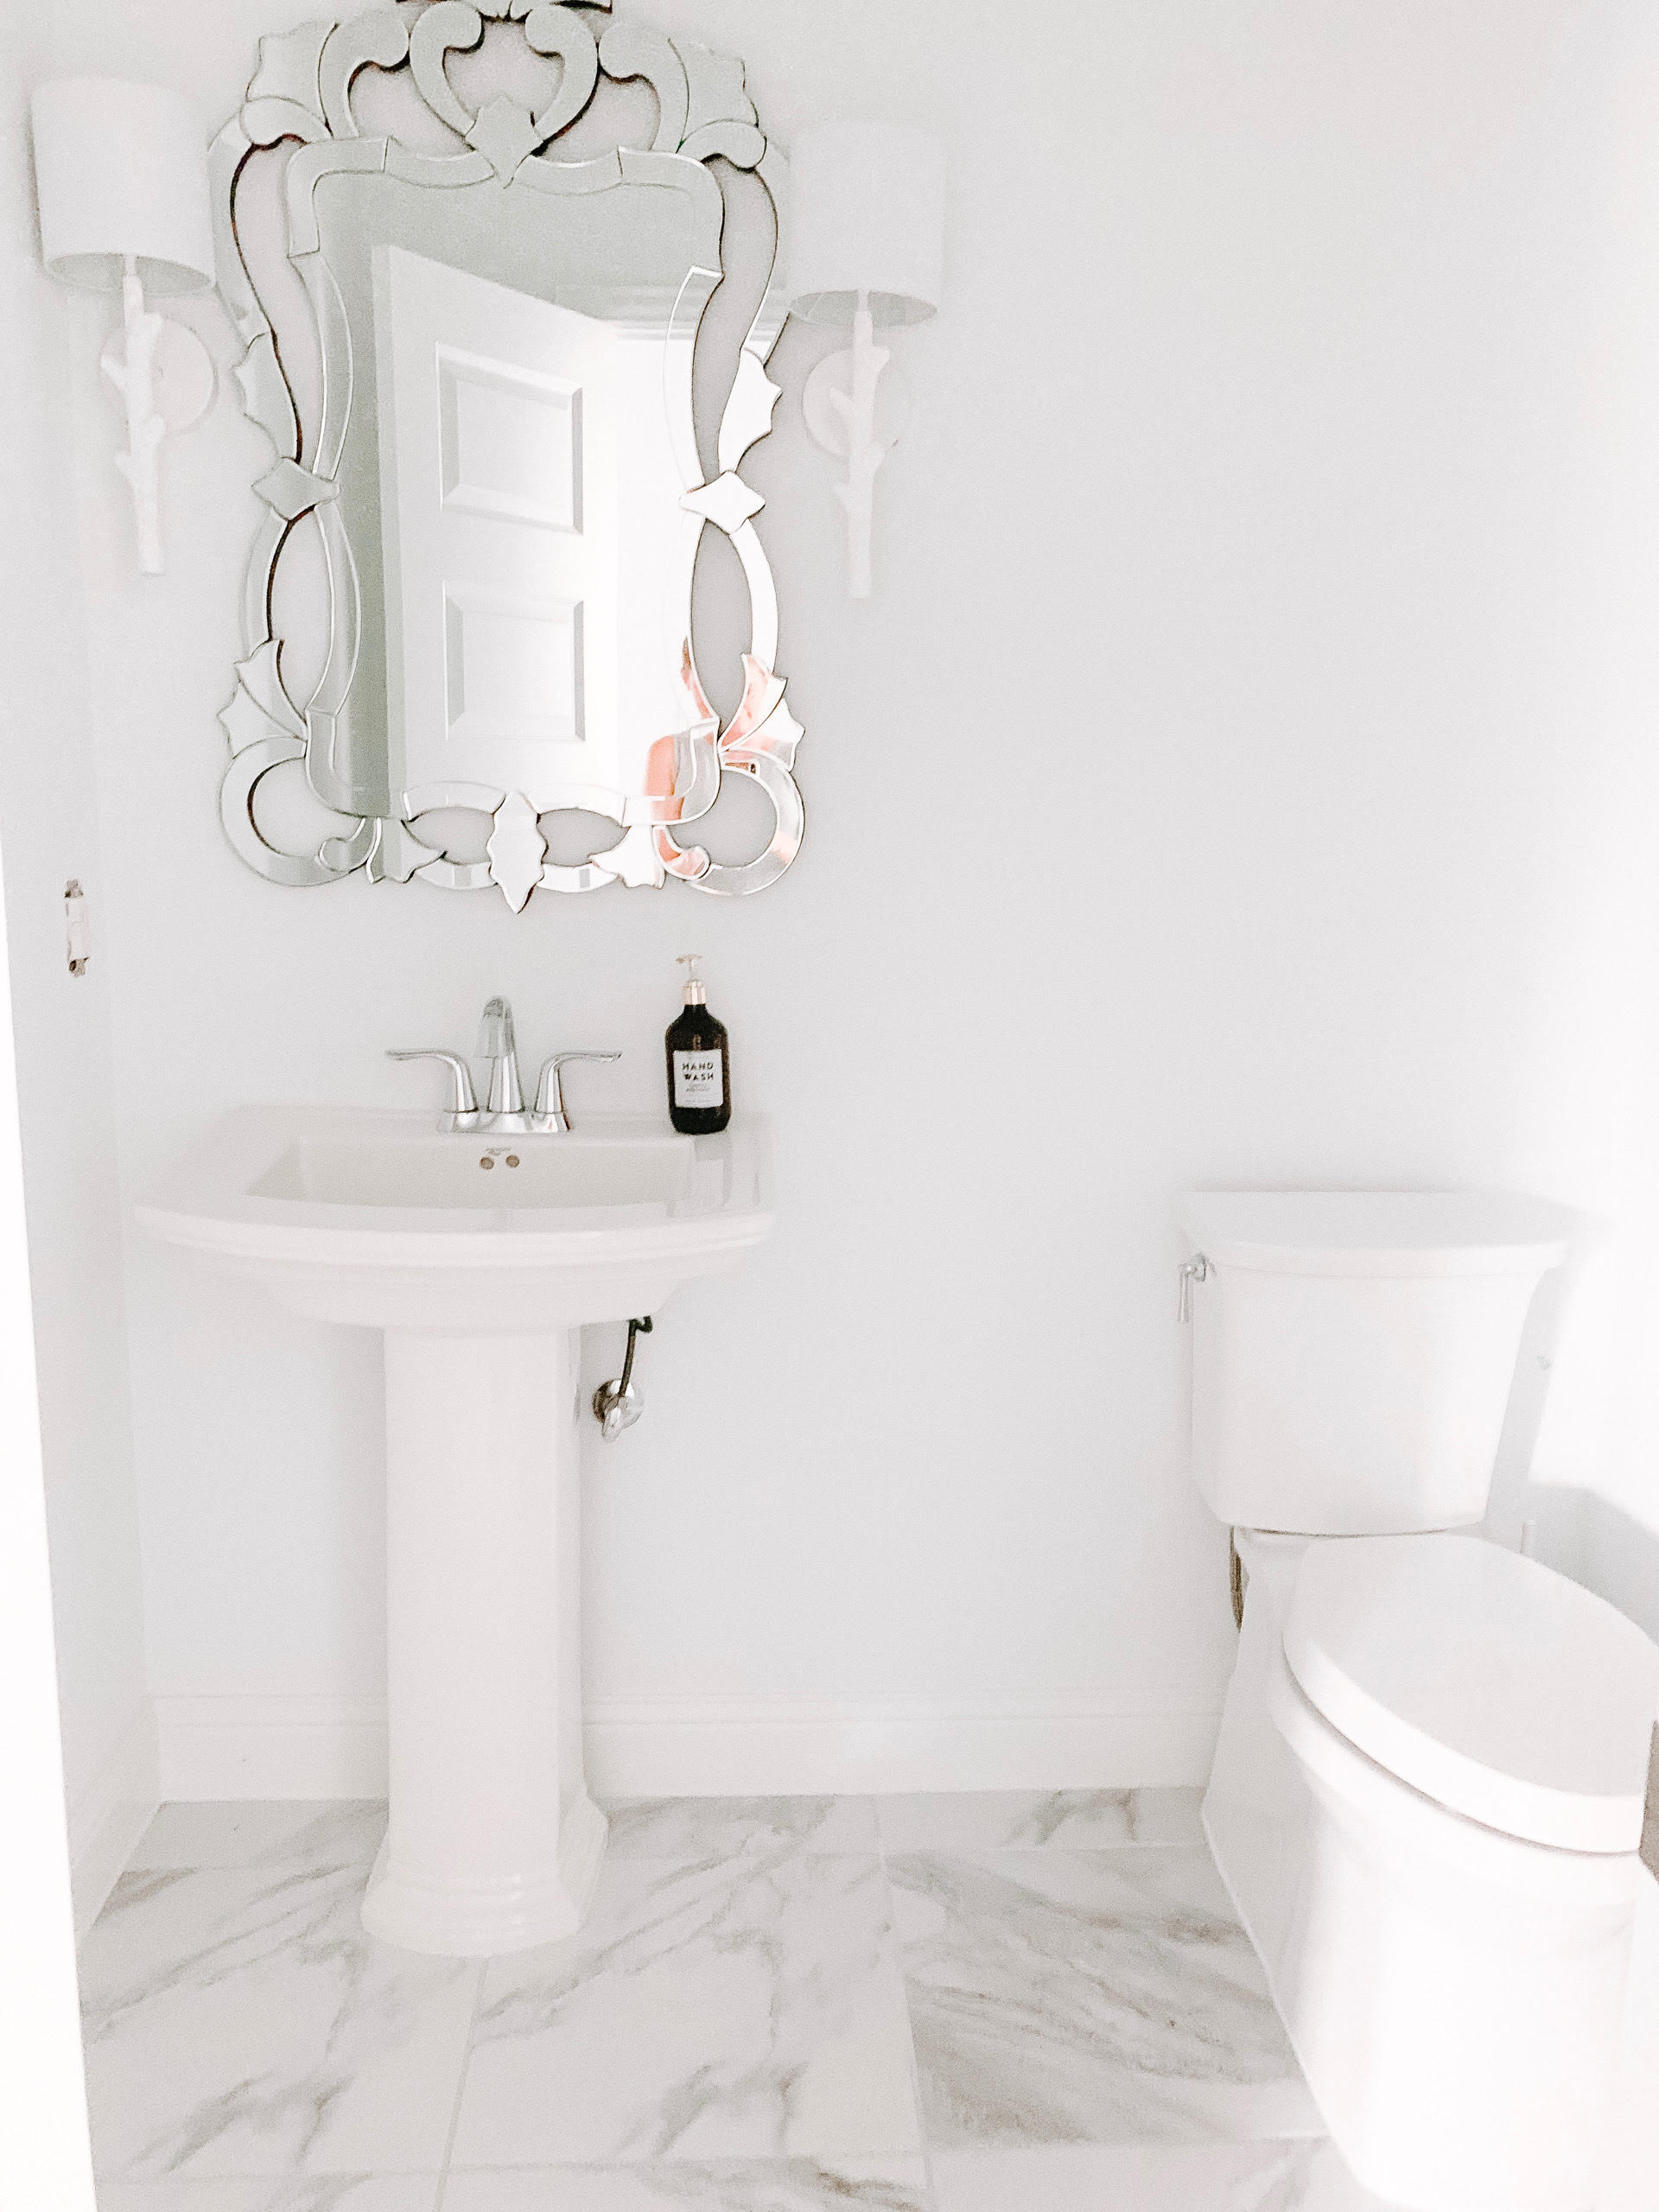 See the design plans for this powder room makeover. #ABlissfulNest #bathroom #bathroommakeover